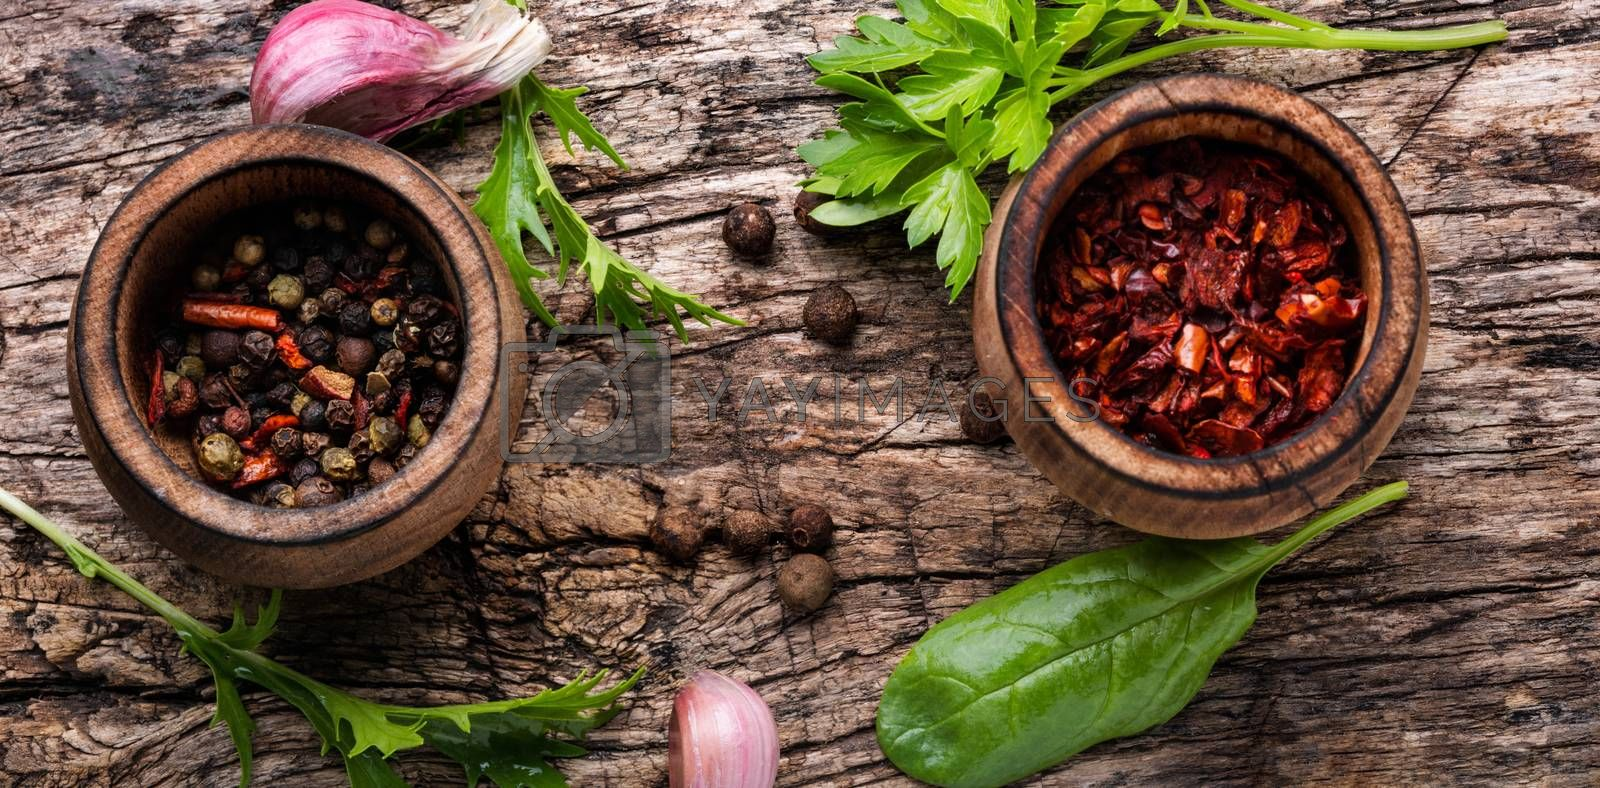 Aromatic spices and herbs by LMykola